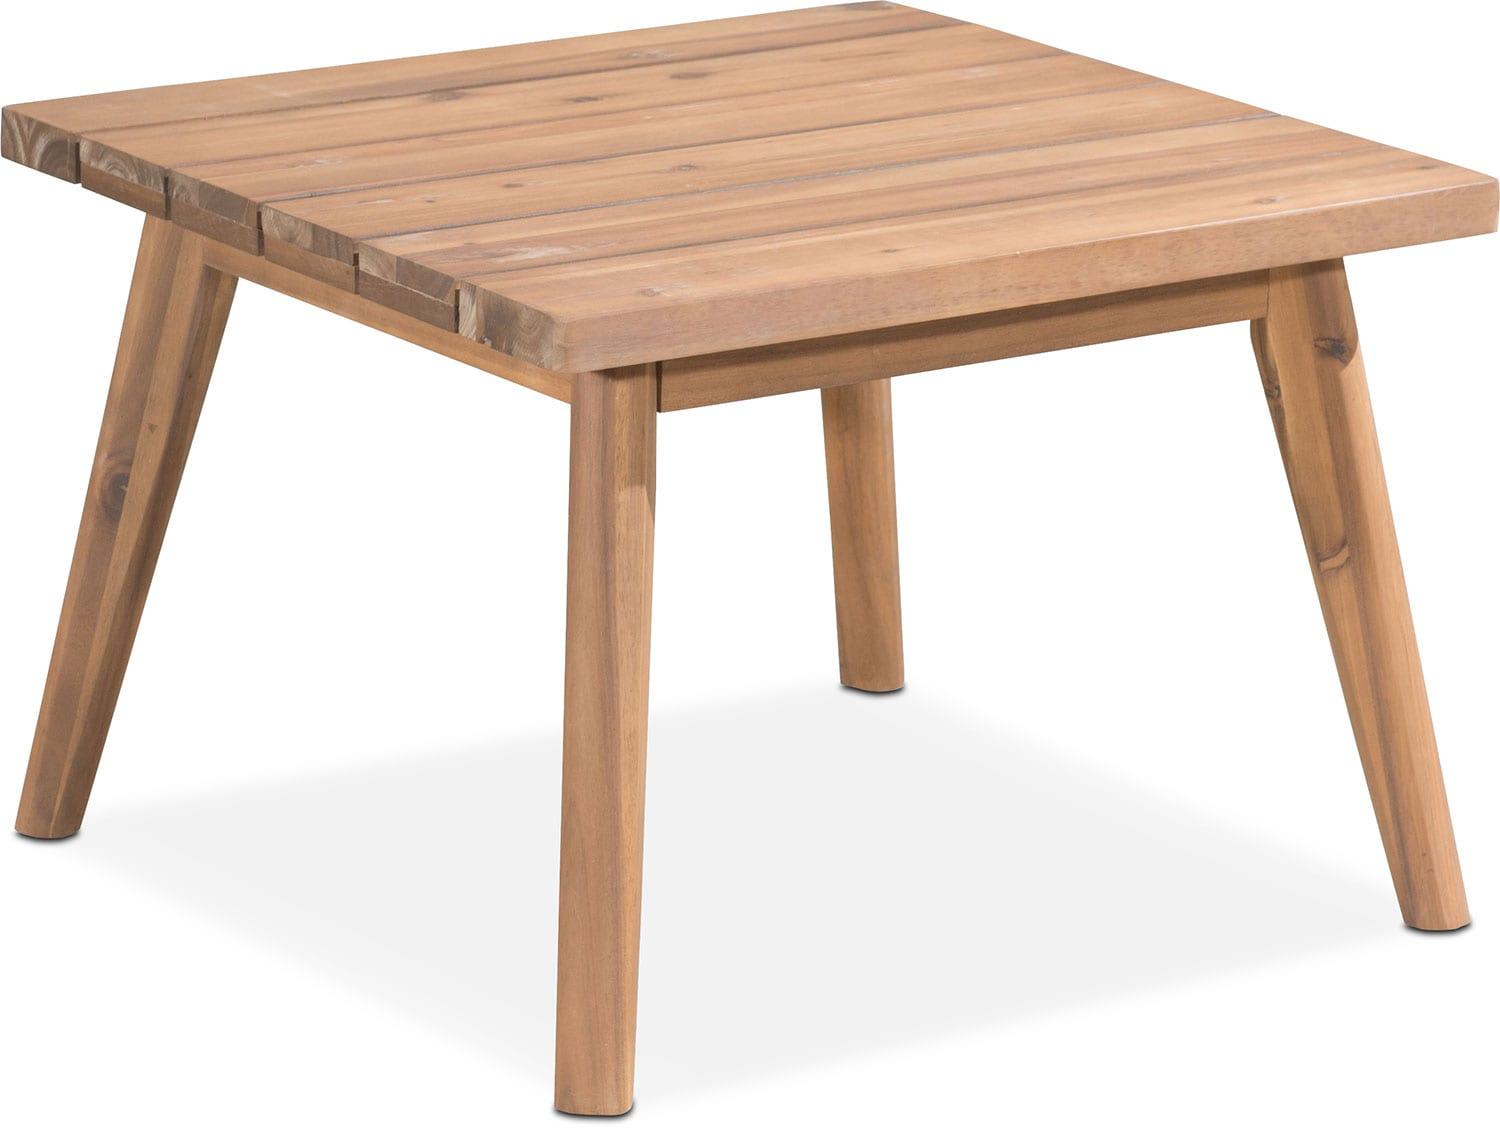 Outdoor Furniture - Peyton Outdoor End Table - Natural